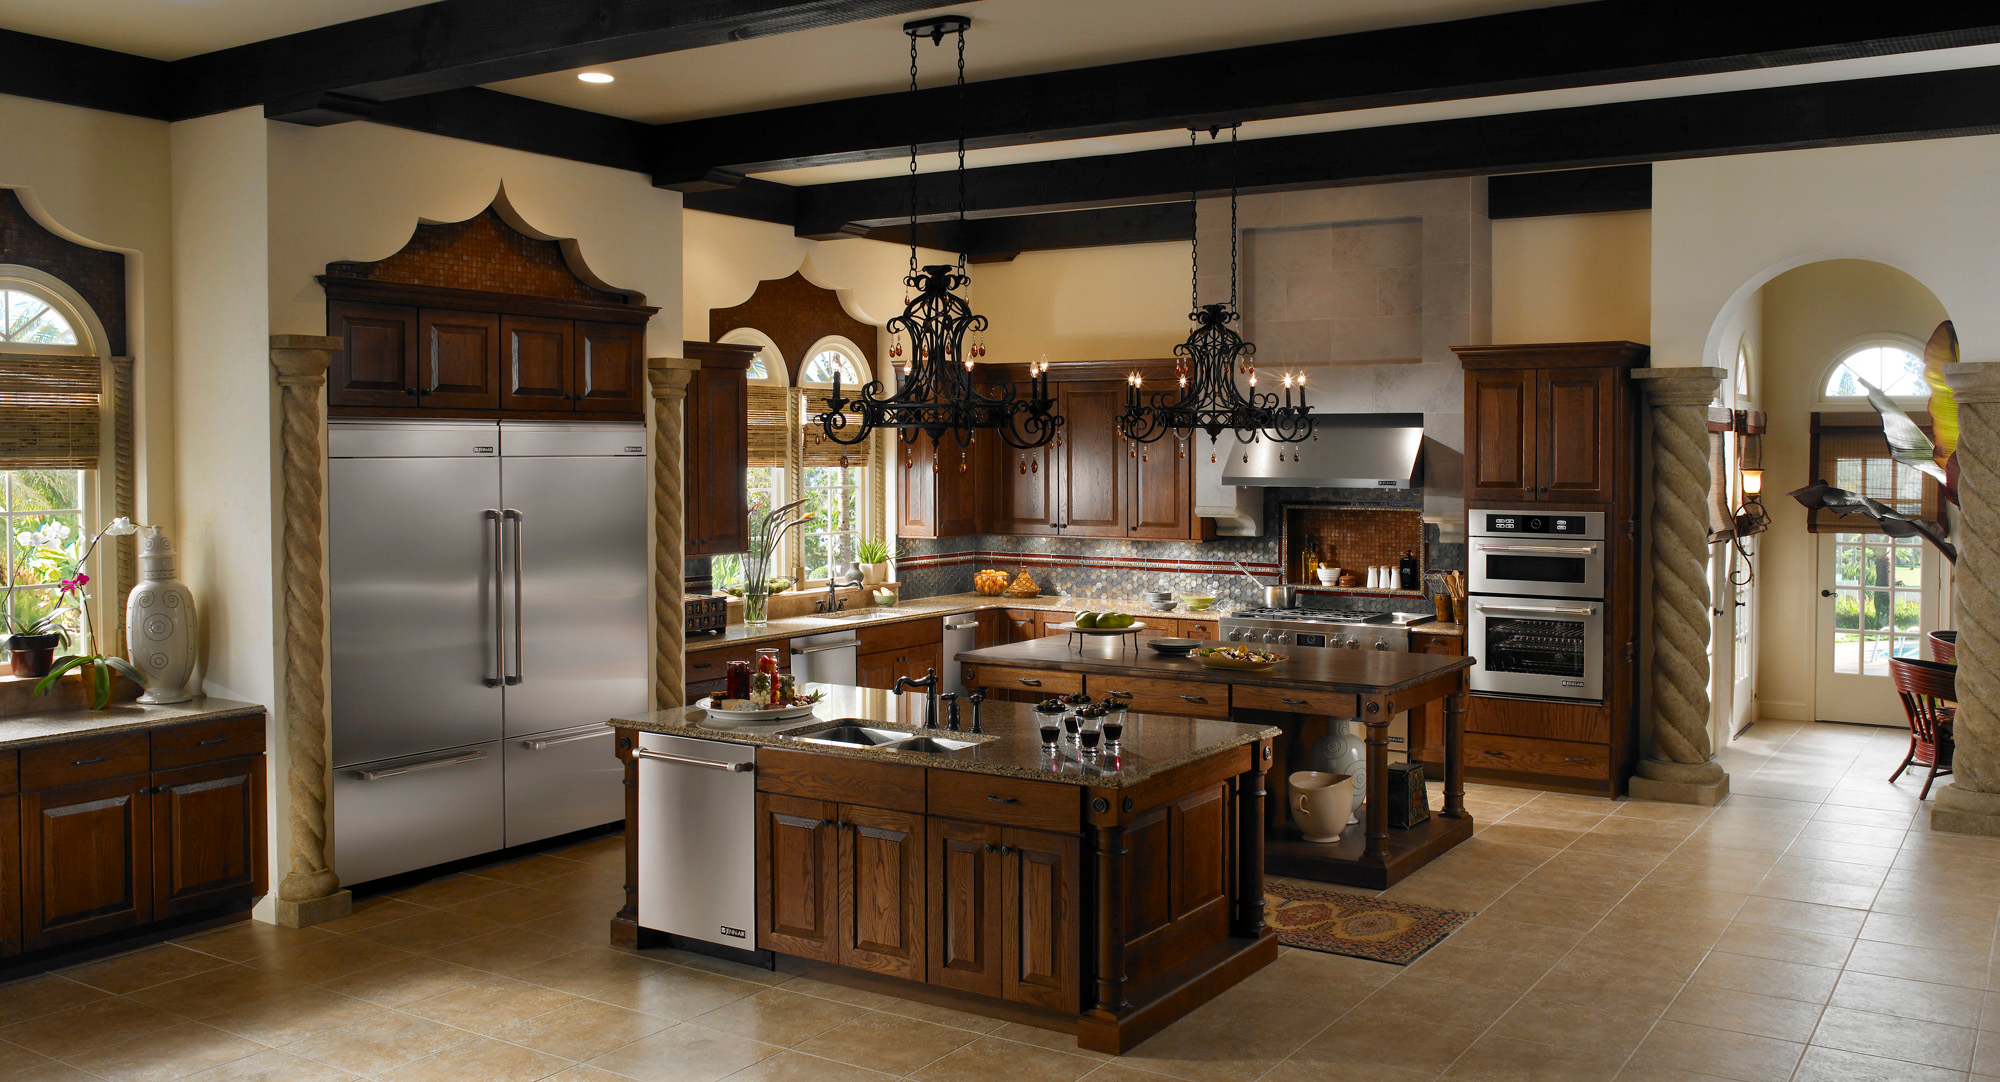 Uncategorized Universal Appliance And Kitchen Center universal appliance and kitchen center calabasas studio city in ca whitepages